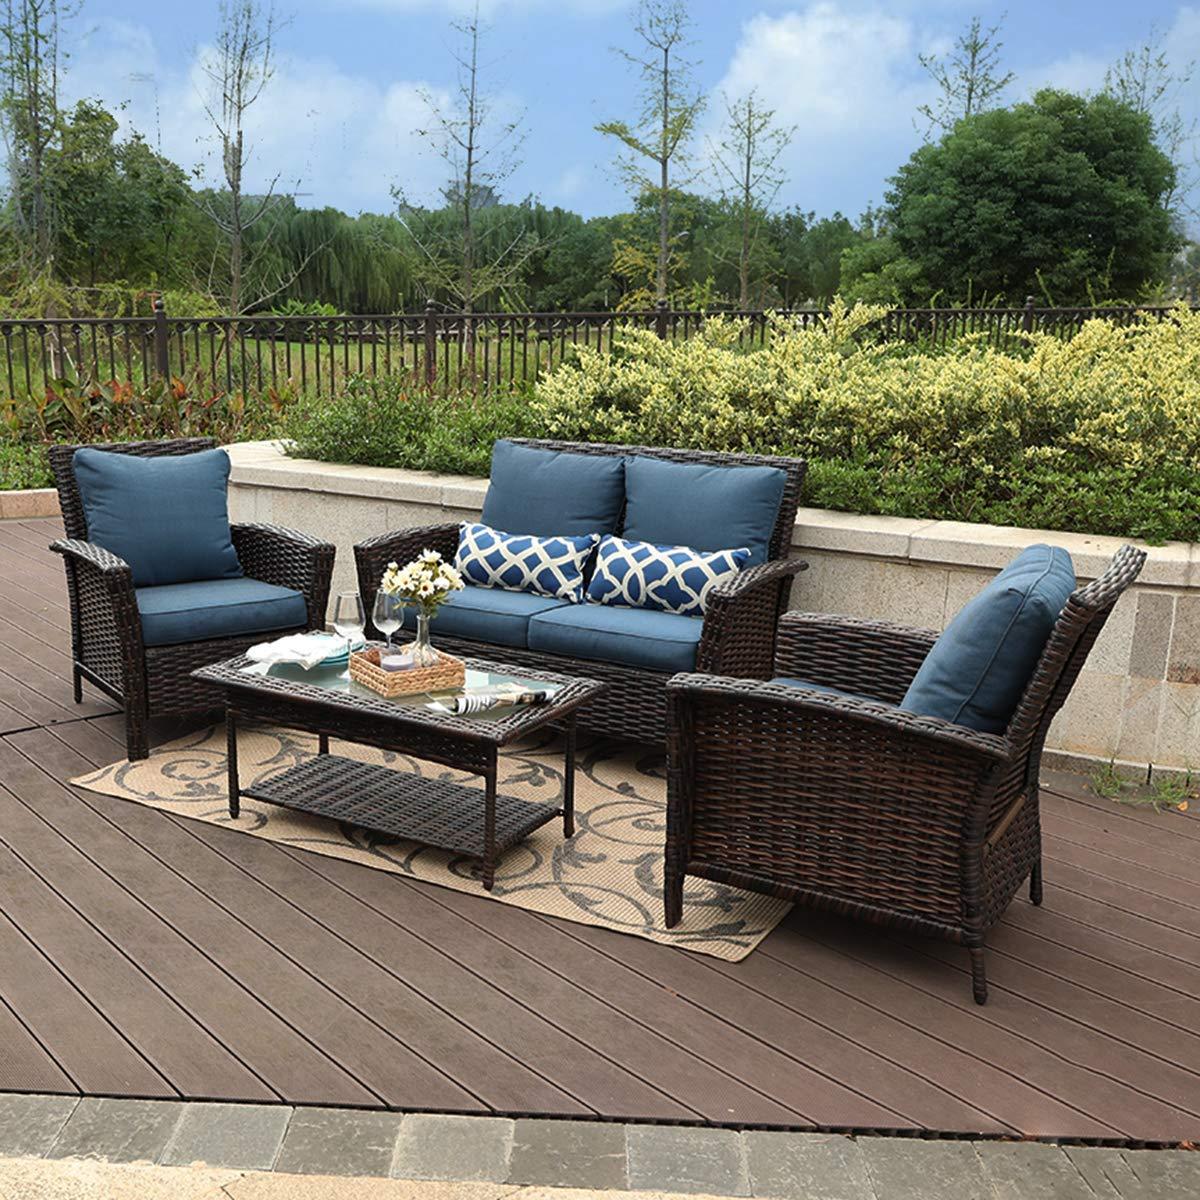 PHI VILLA 4 PC Patio Wicker Sofa Set Outdoor Rattan Furniture Conversation Set with Coffee Table, Blue Padded Cushion